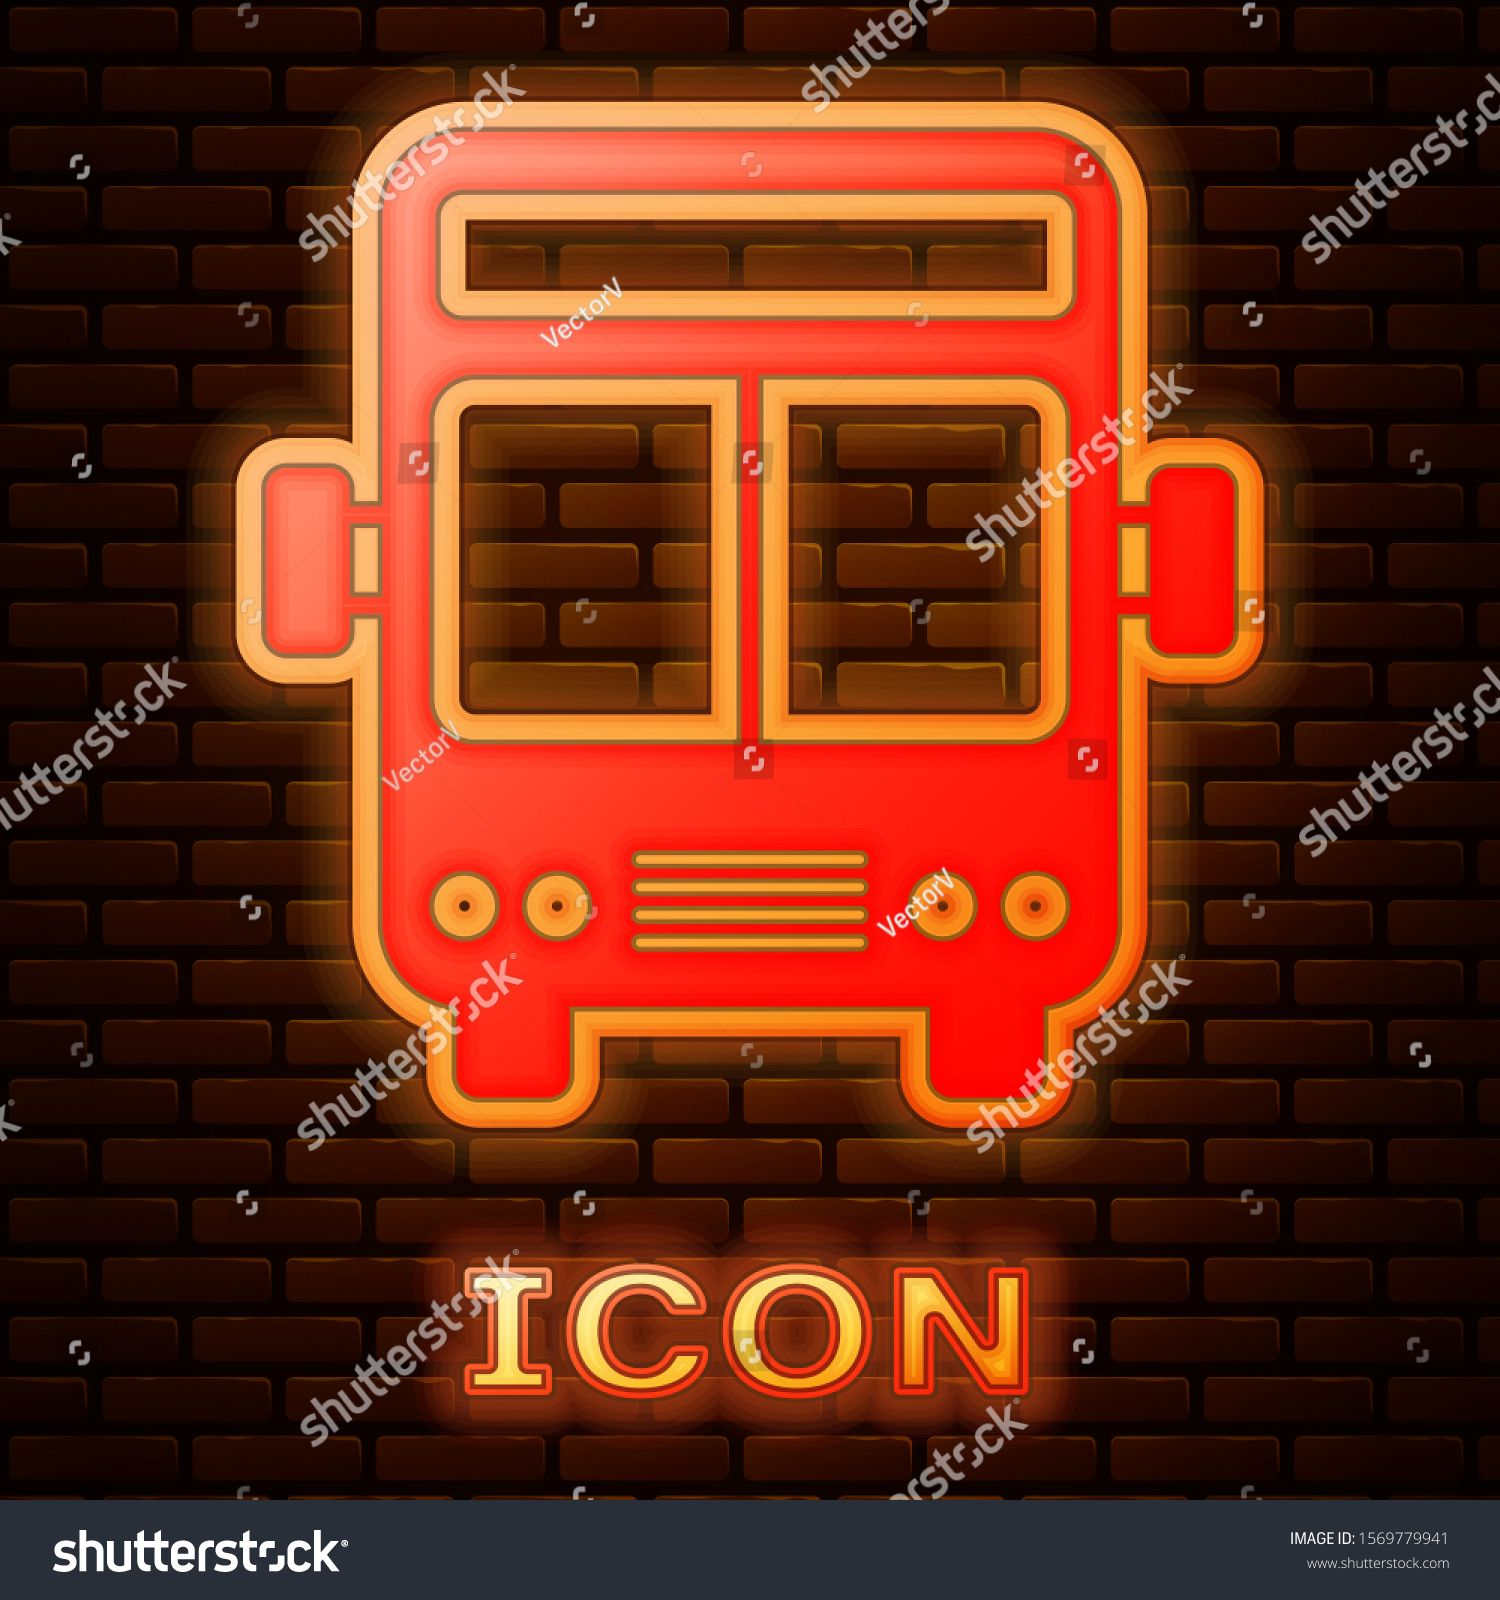 Glowing neon Bus icon isolated on brick wall background